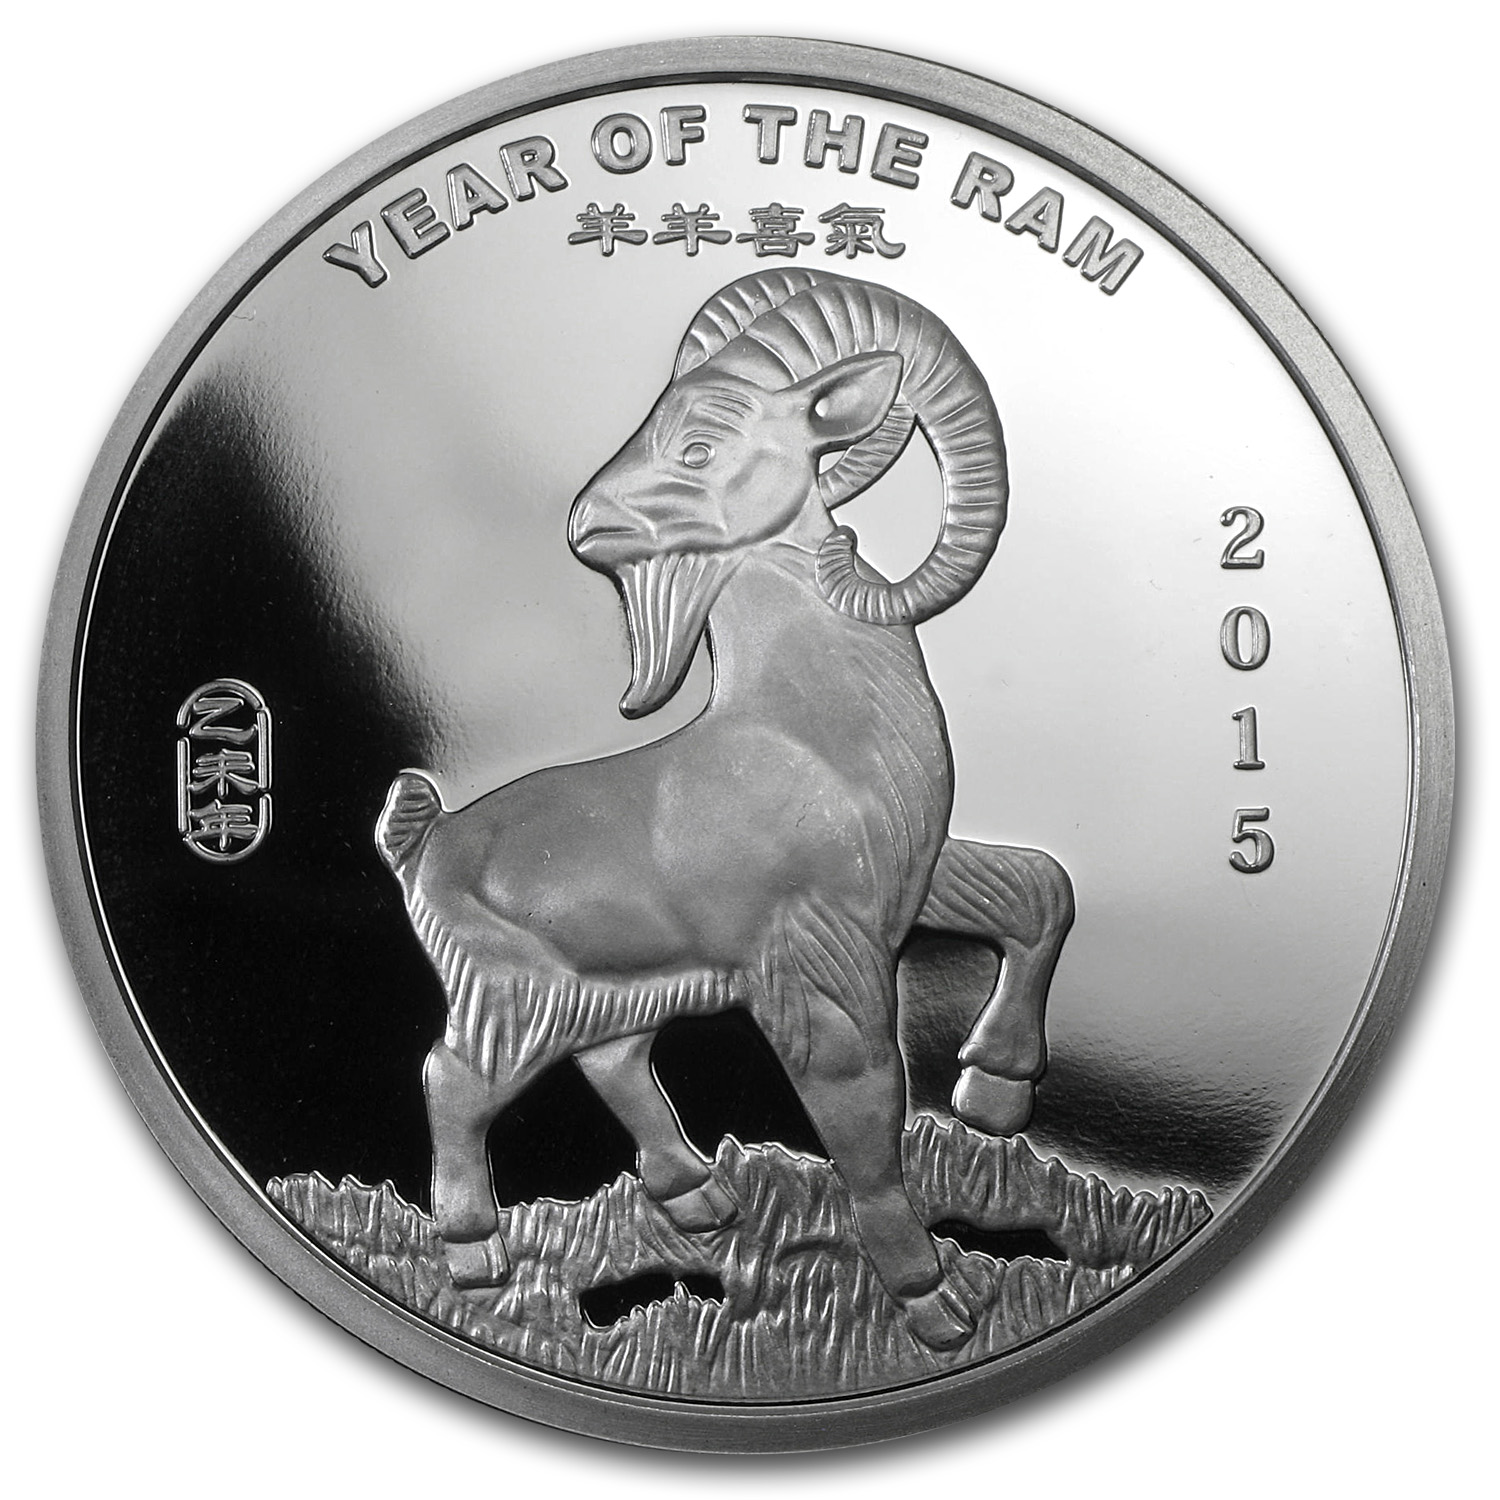 2 oz Silver Round - APMEX (2015 Year of the Ram)